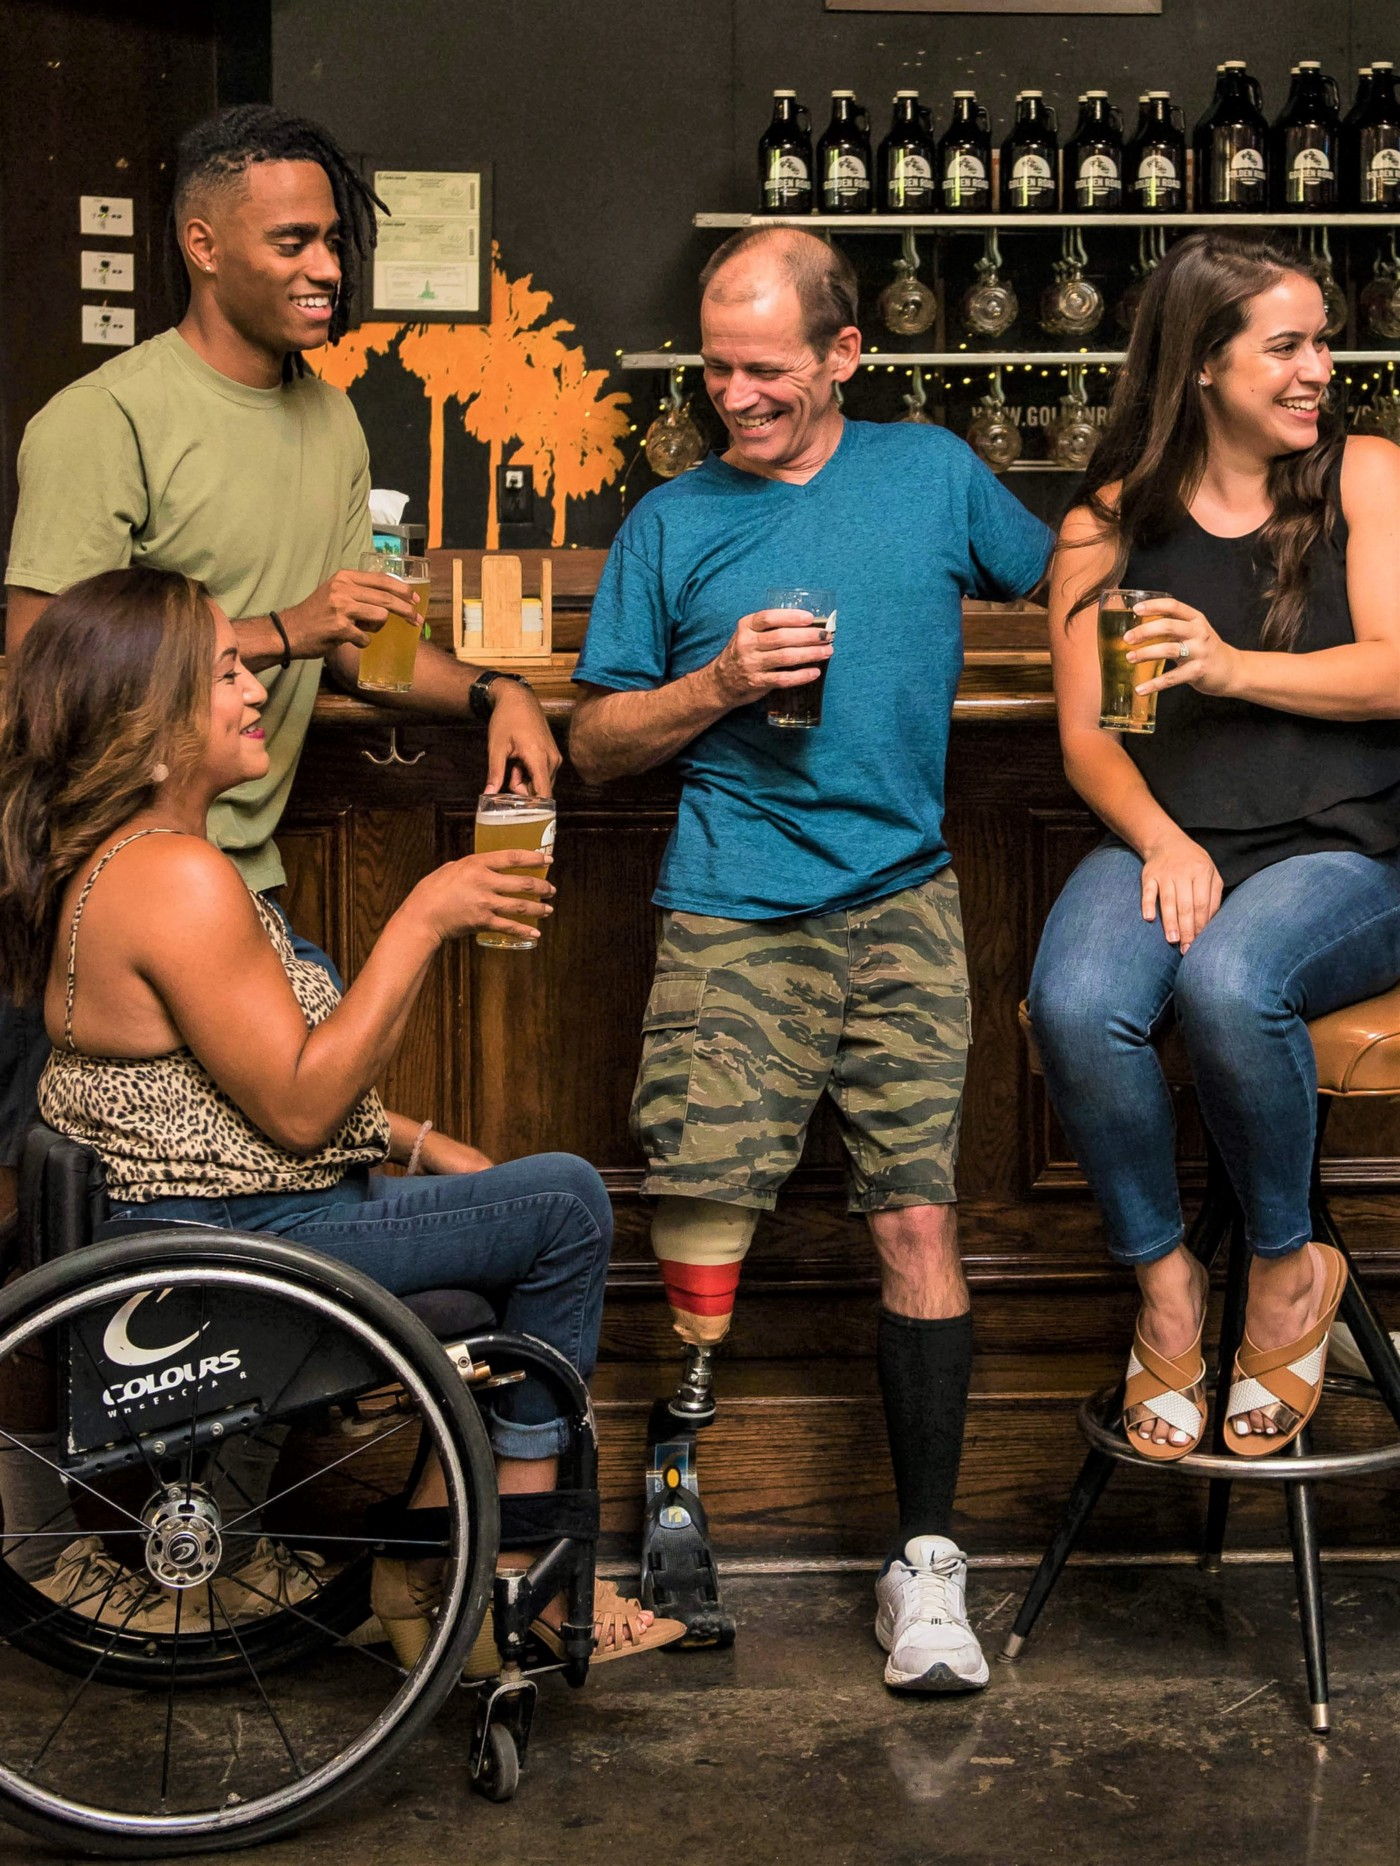 four friends in a bar drinking beer, girl in wheelchair, man with leg prosthesis